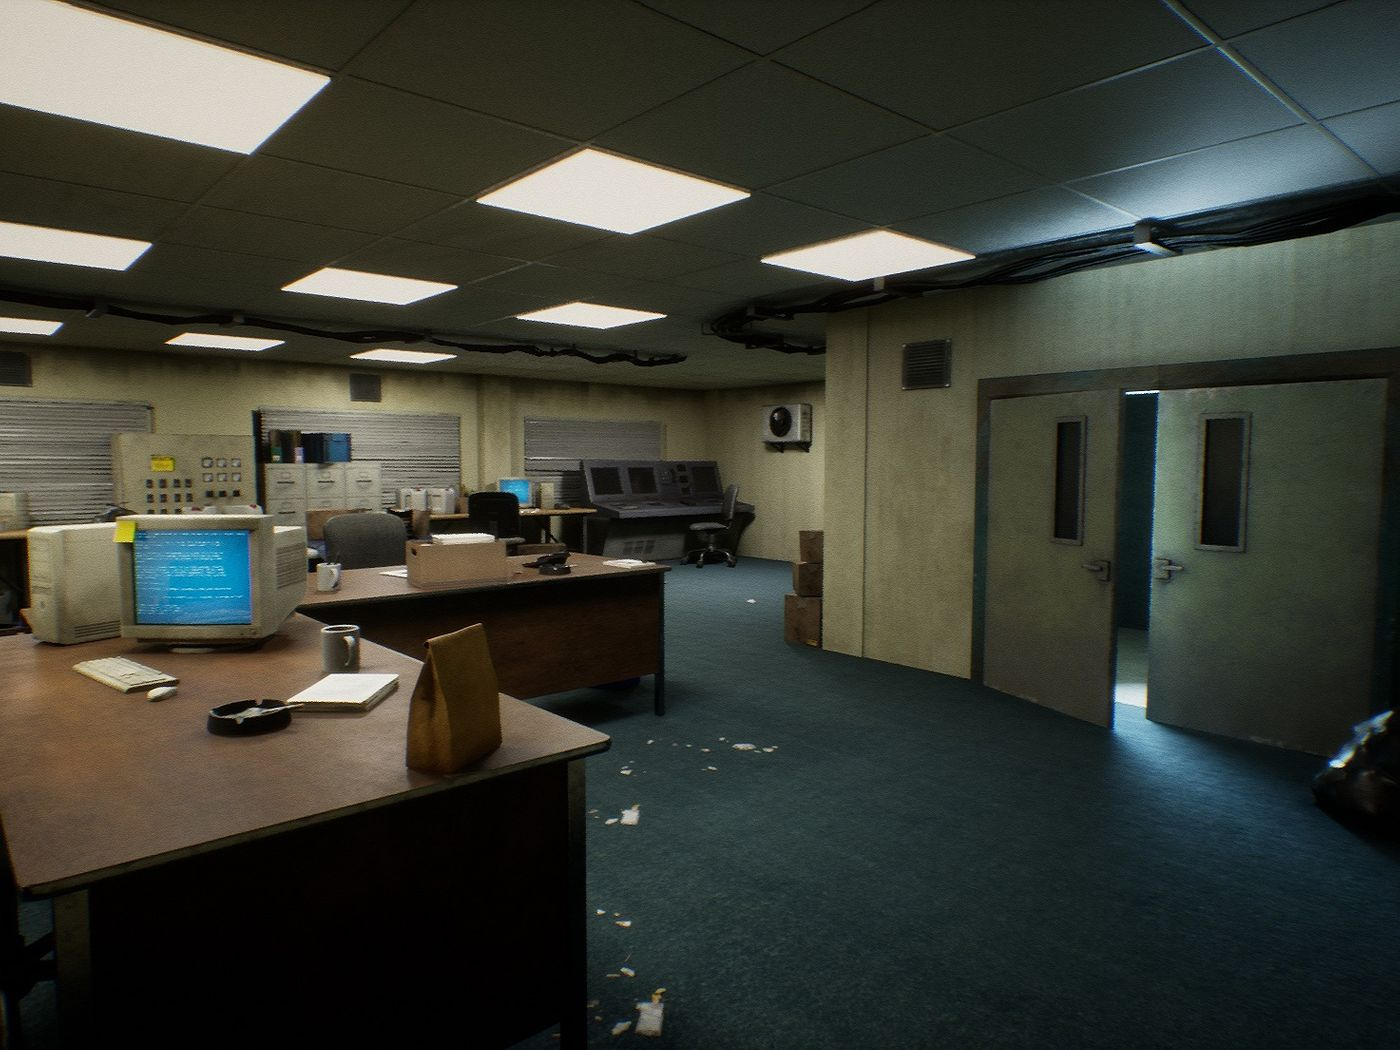 File 314 -  UE4 Office Environment